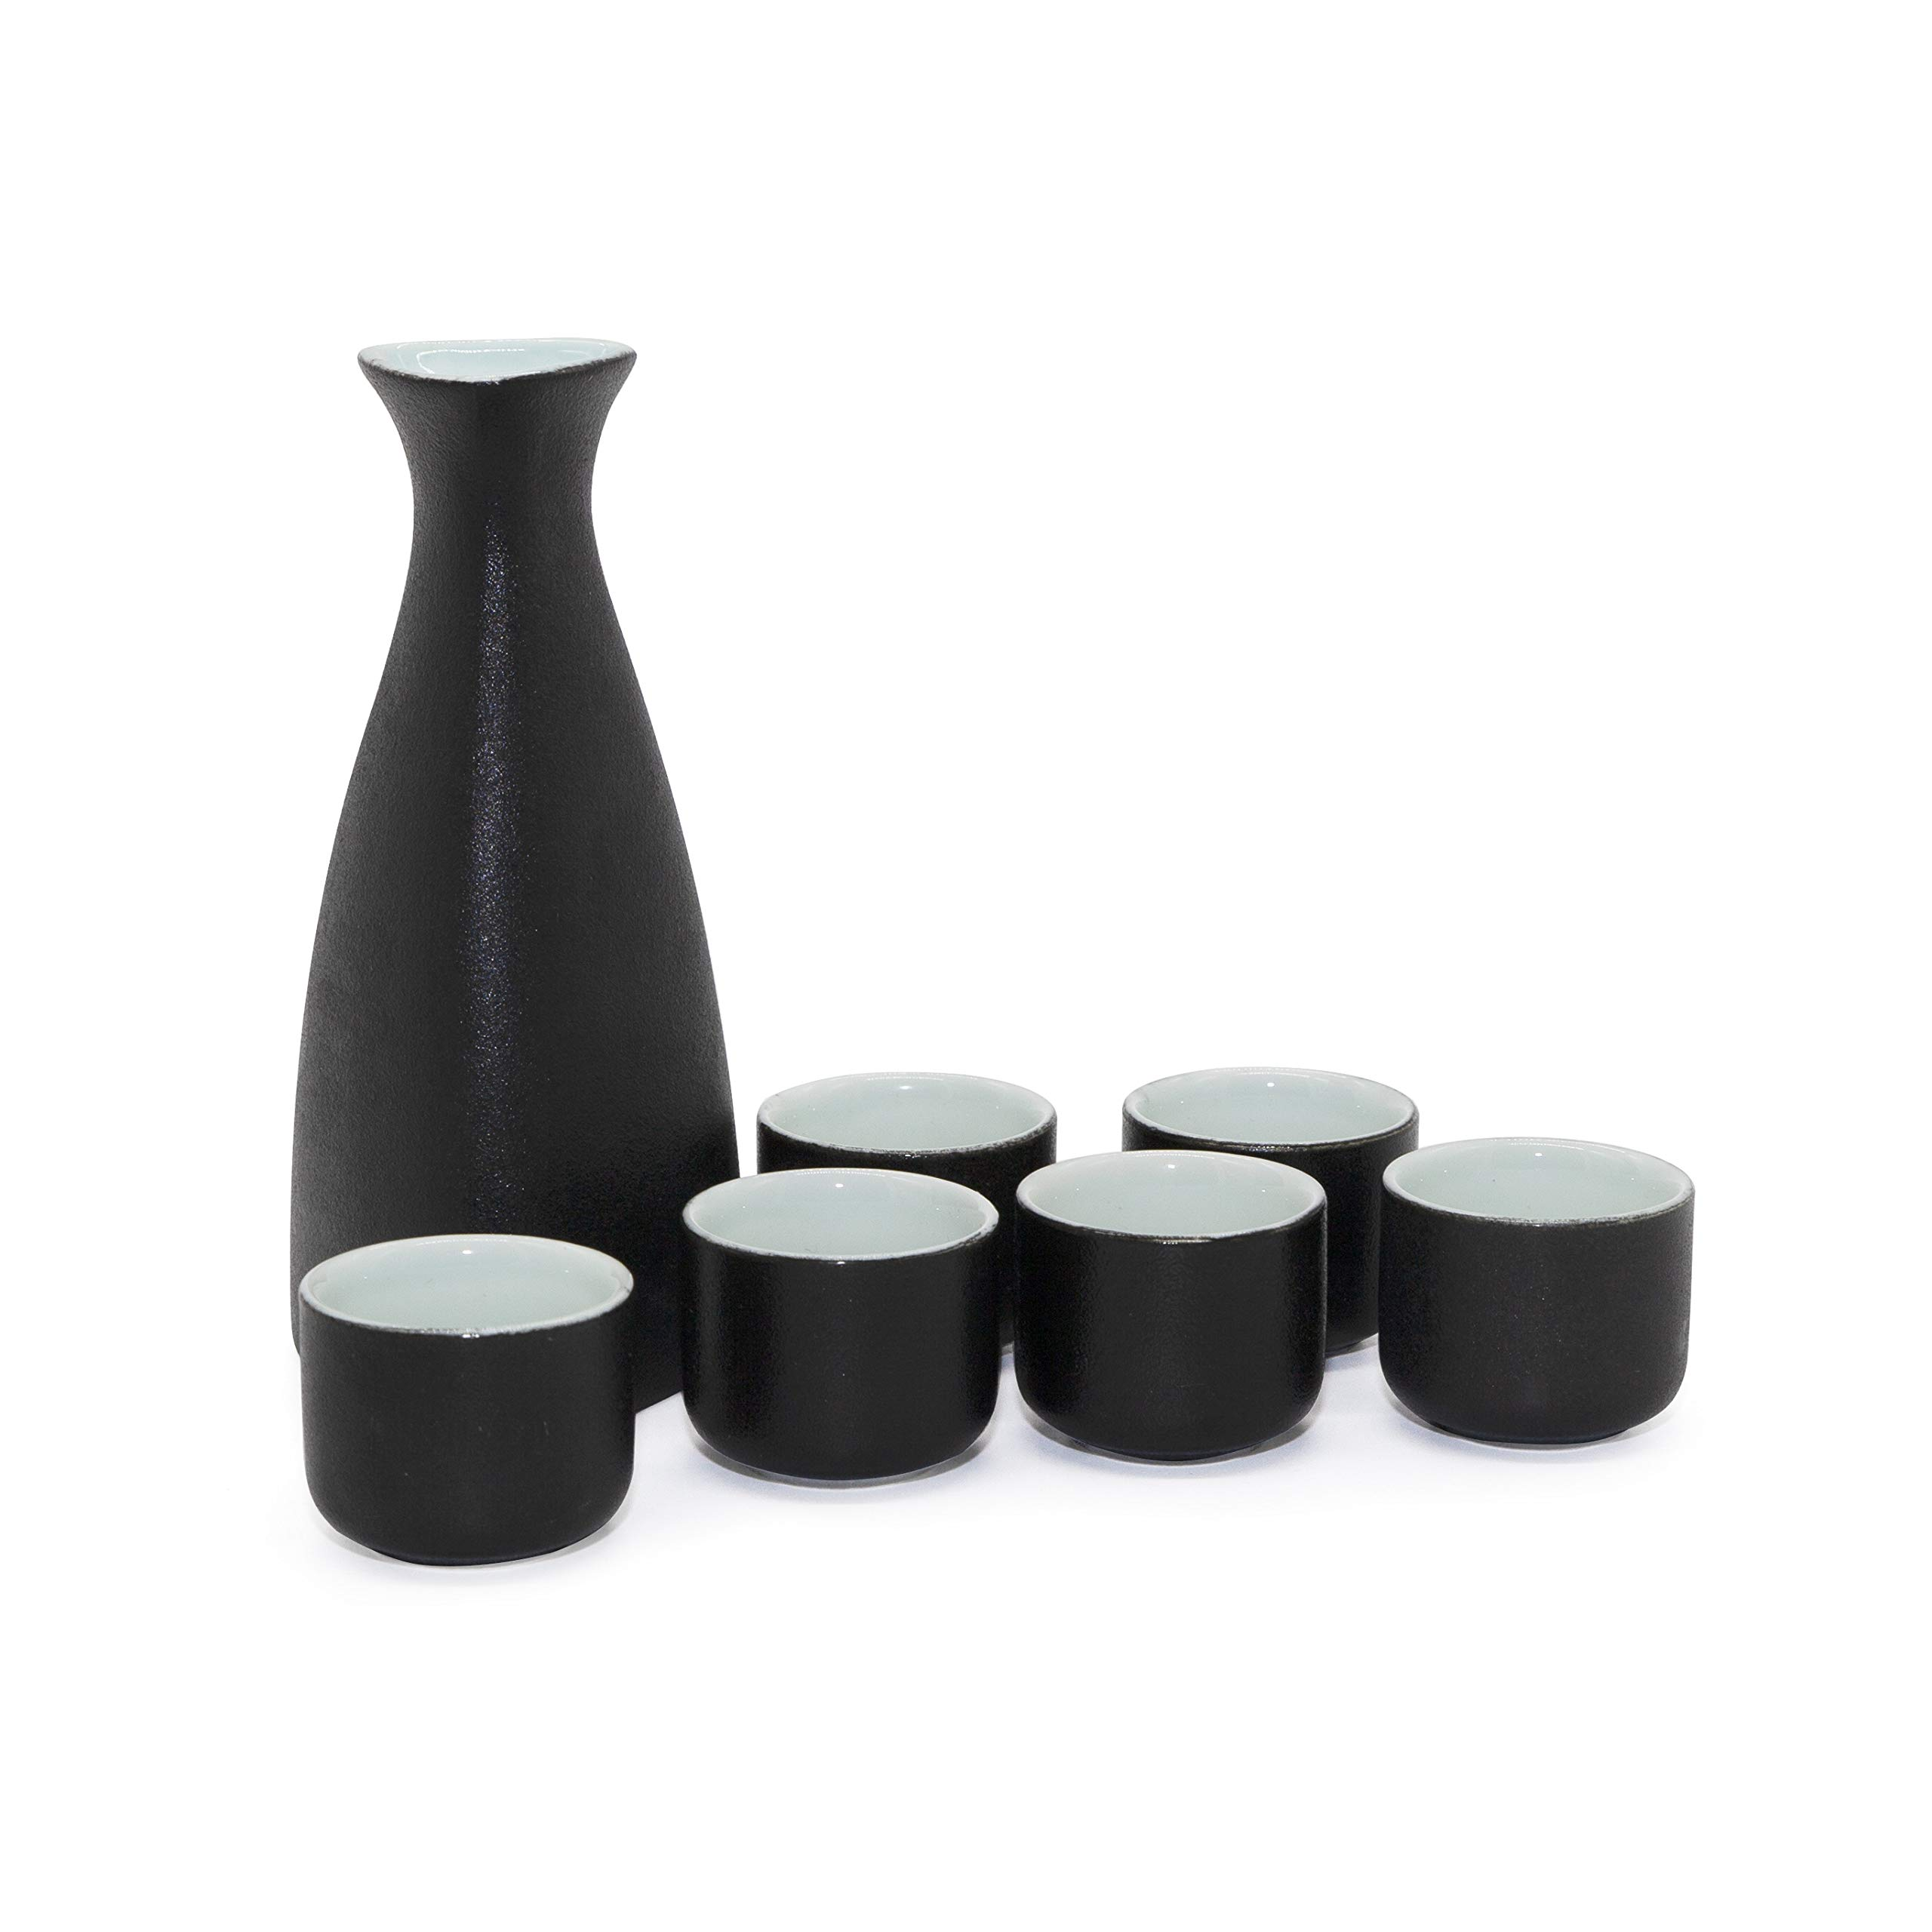 NEWQZ Japanese Sake Set, Traditional Ceramics Black Sake Sets 1 Pot and 6 Cups, with a Gift Box